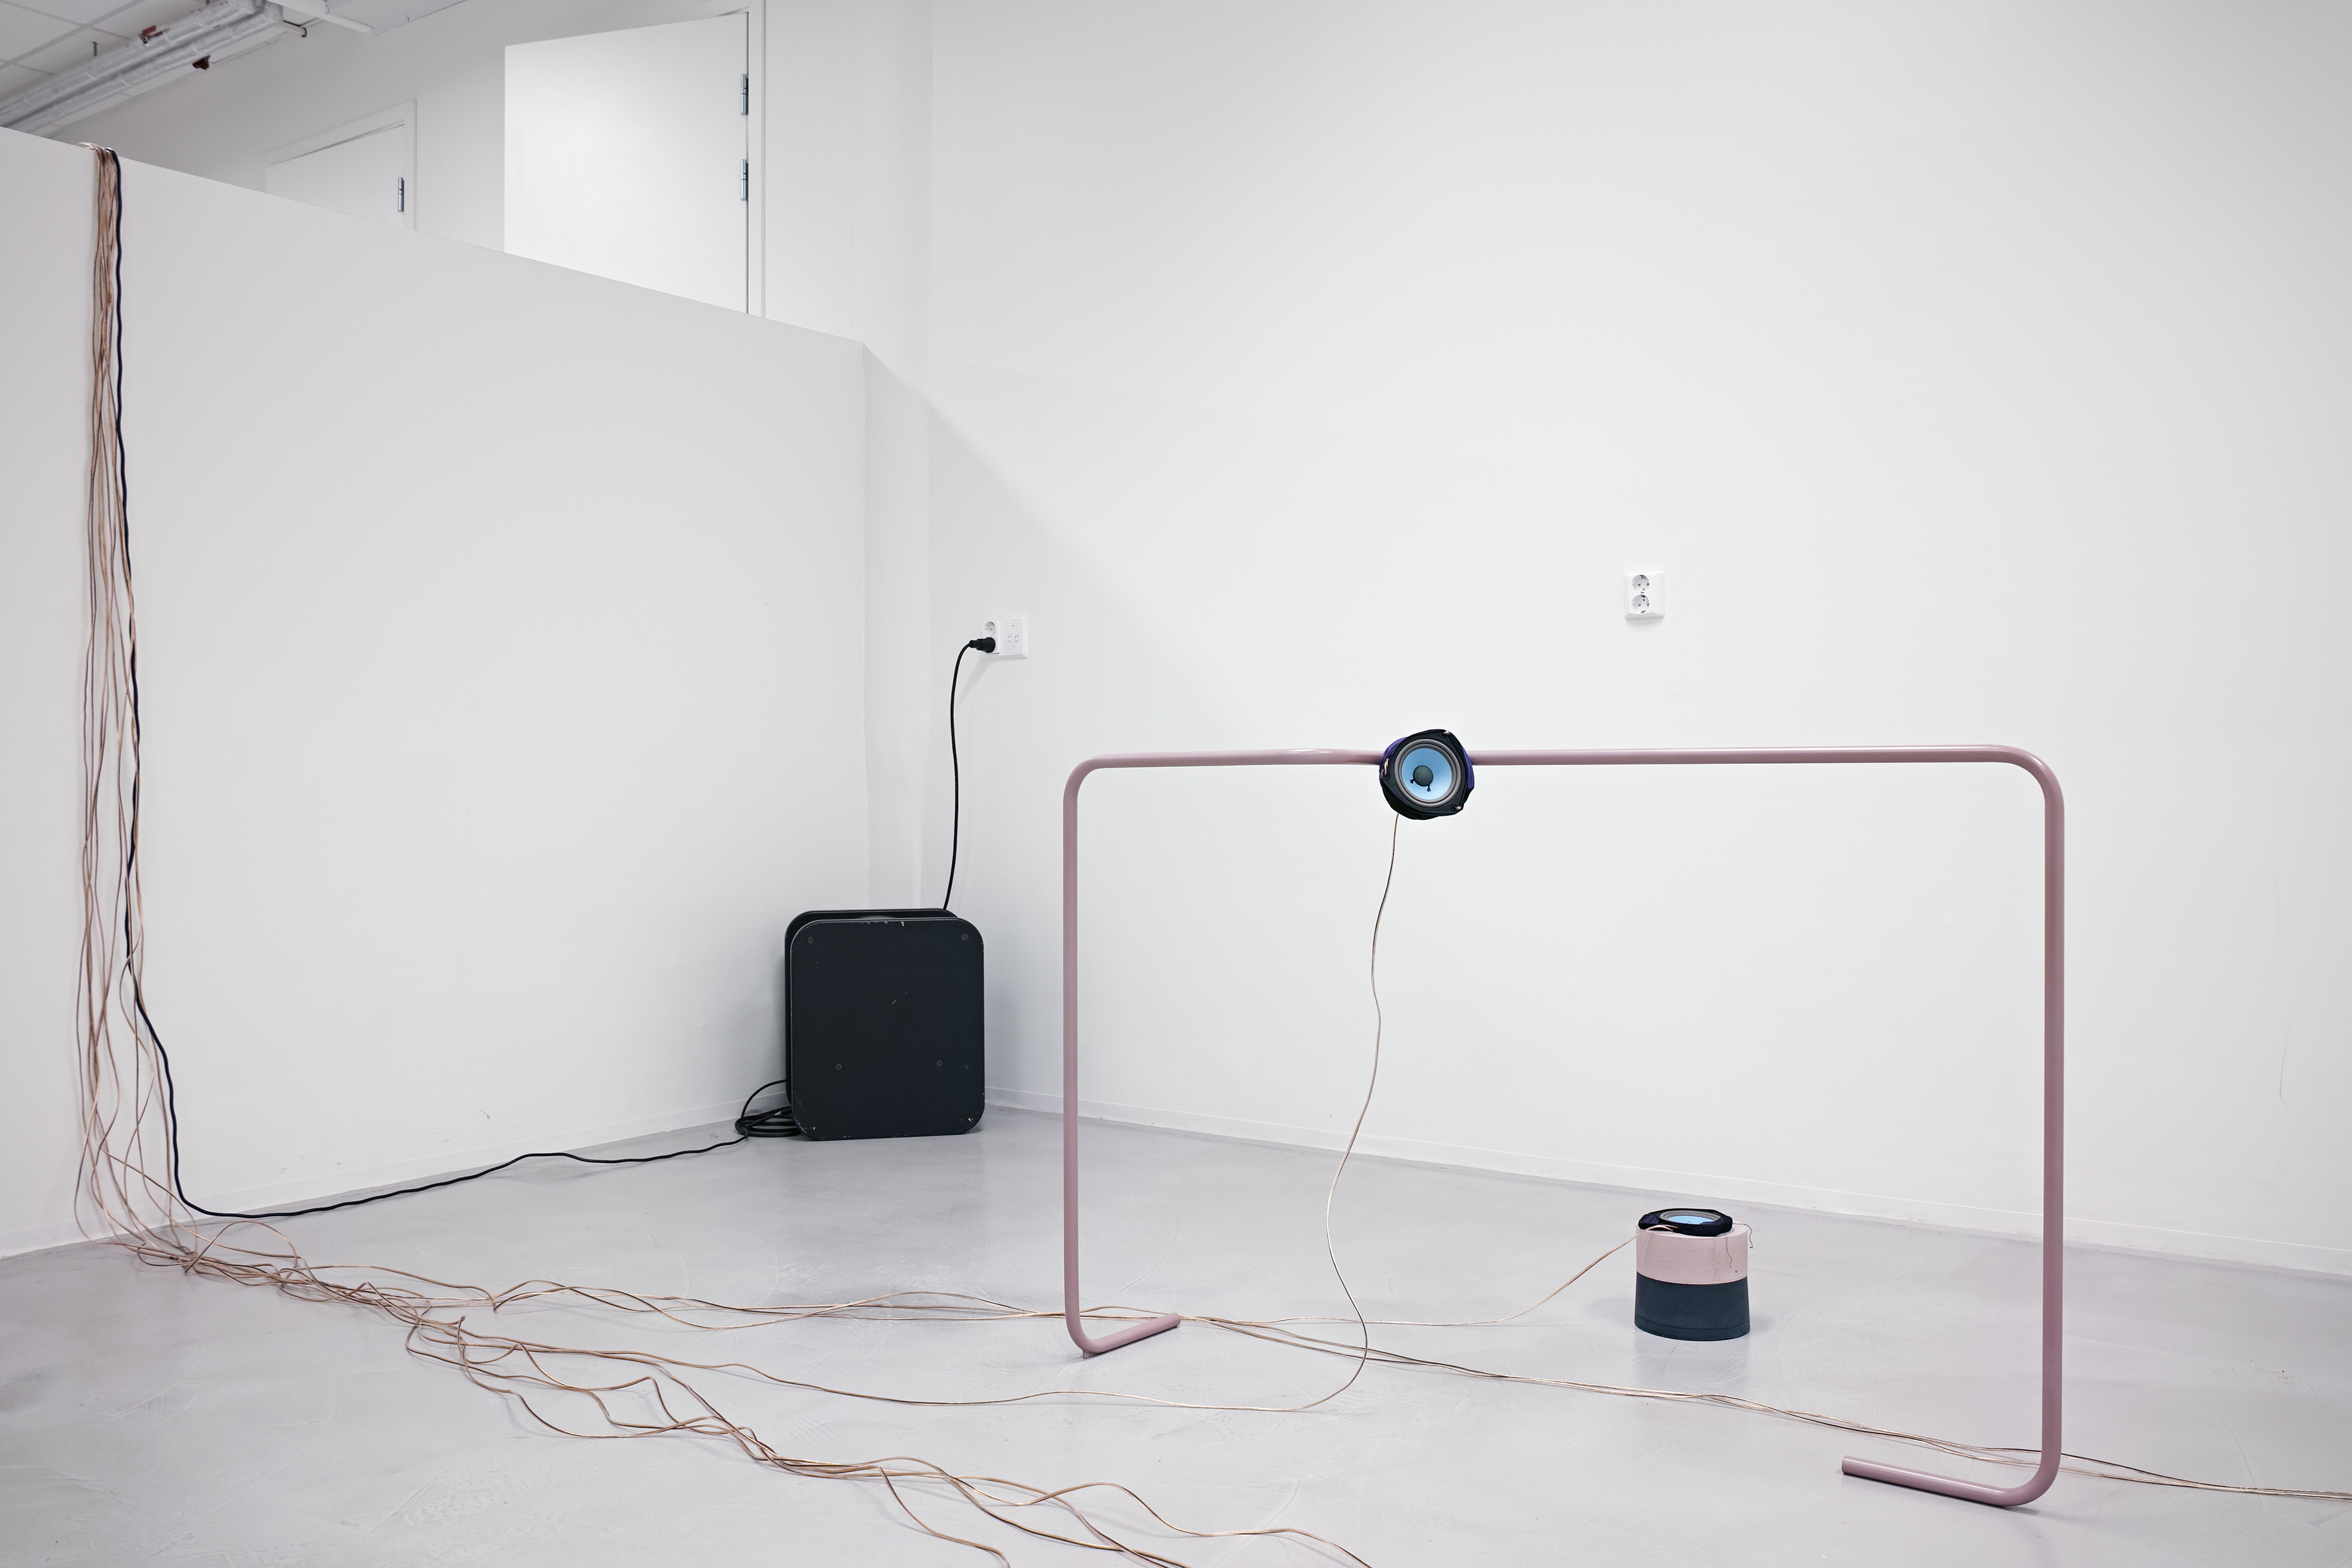 Installation view, powder-coated bent steel, copper audio cables, speaker, sub-woofer, pigmented Jesmonite, Lycra, Polyester fabric